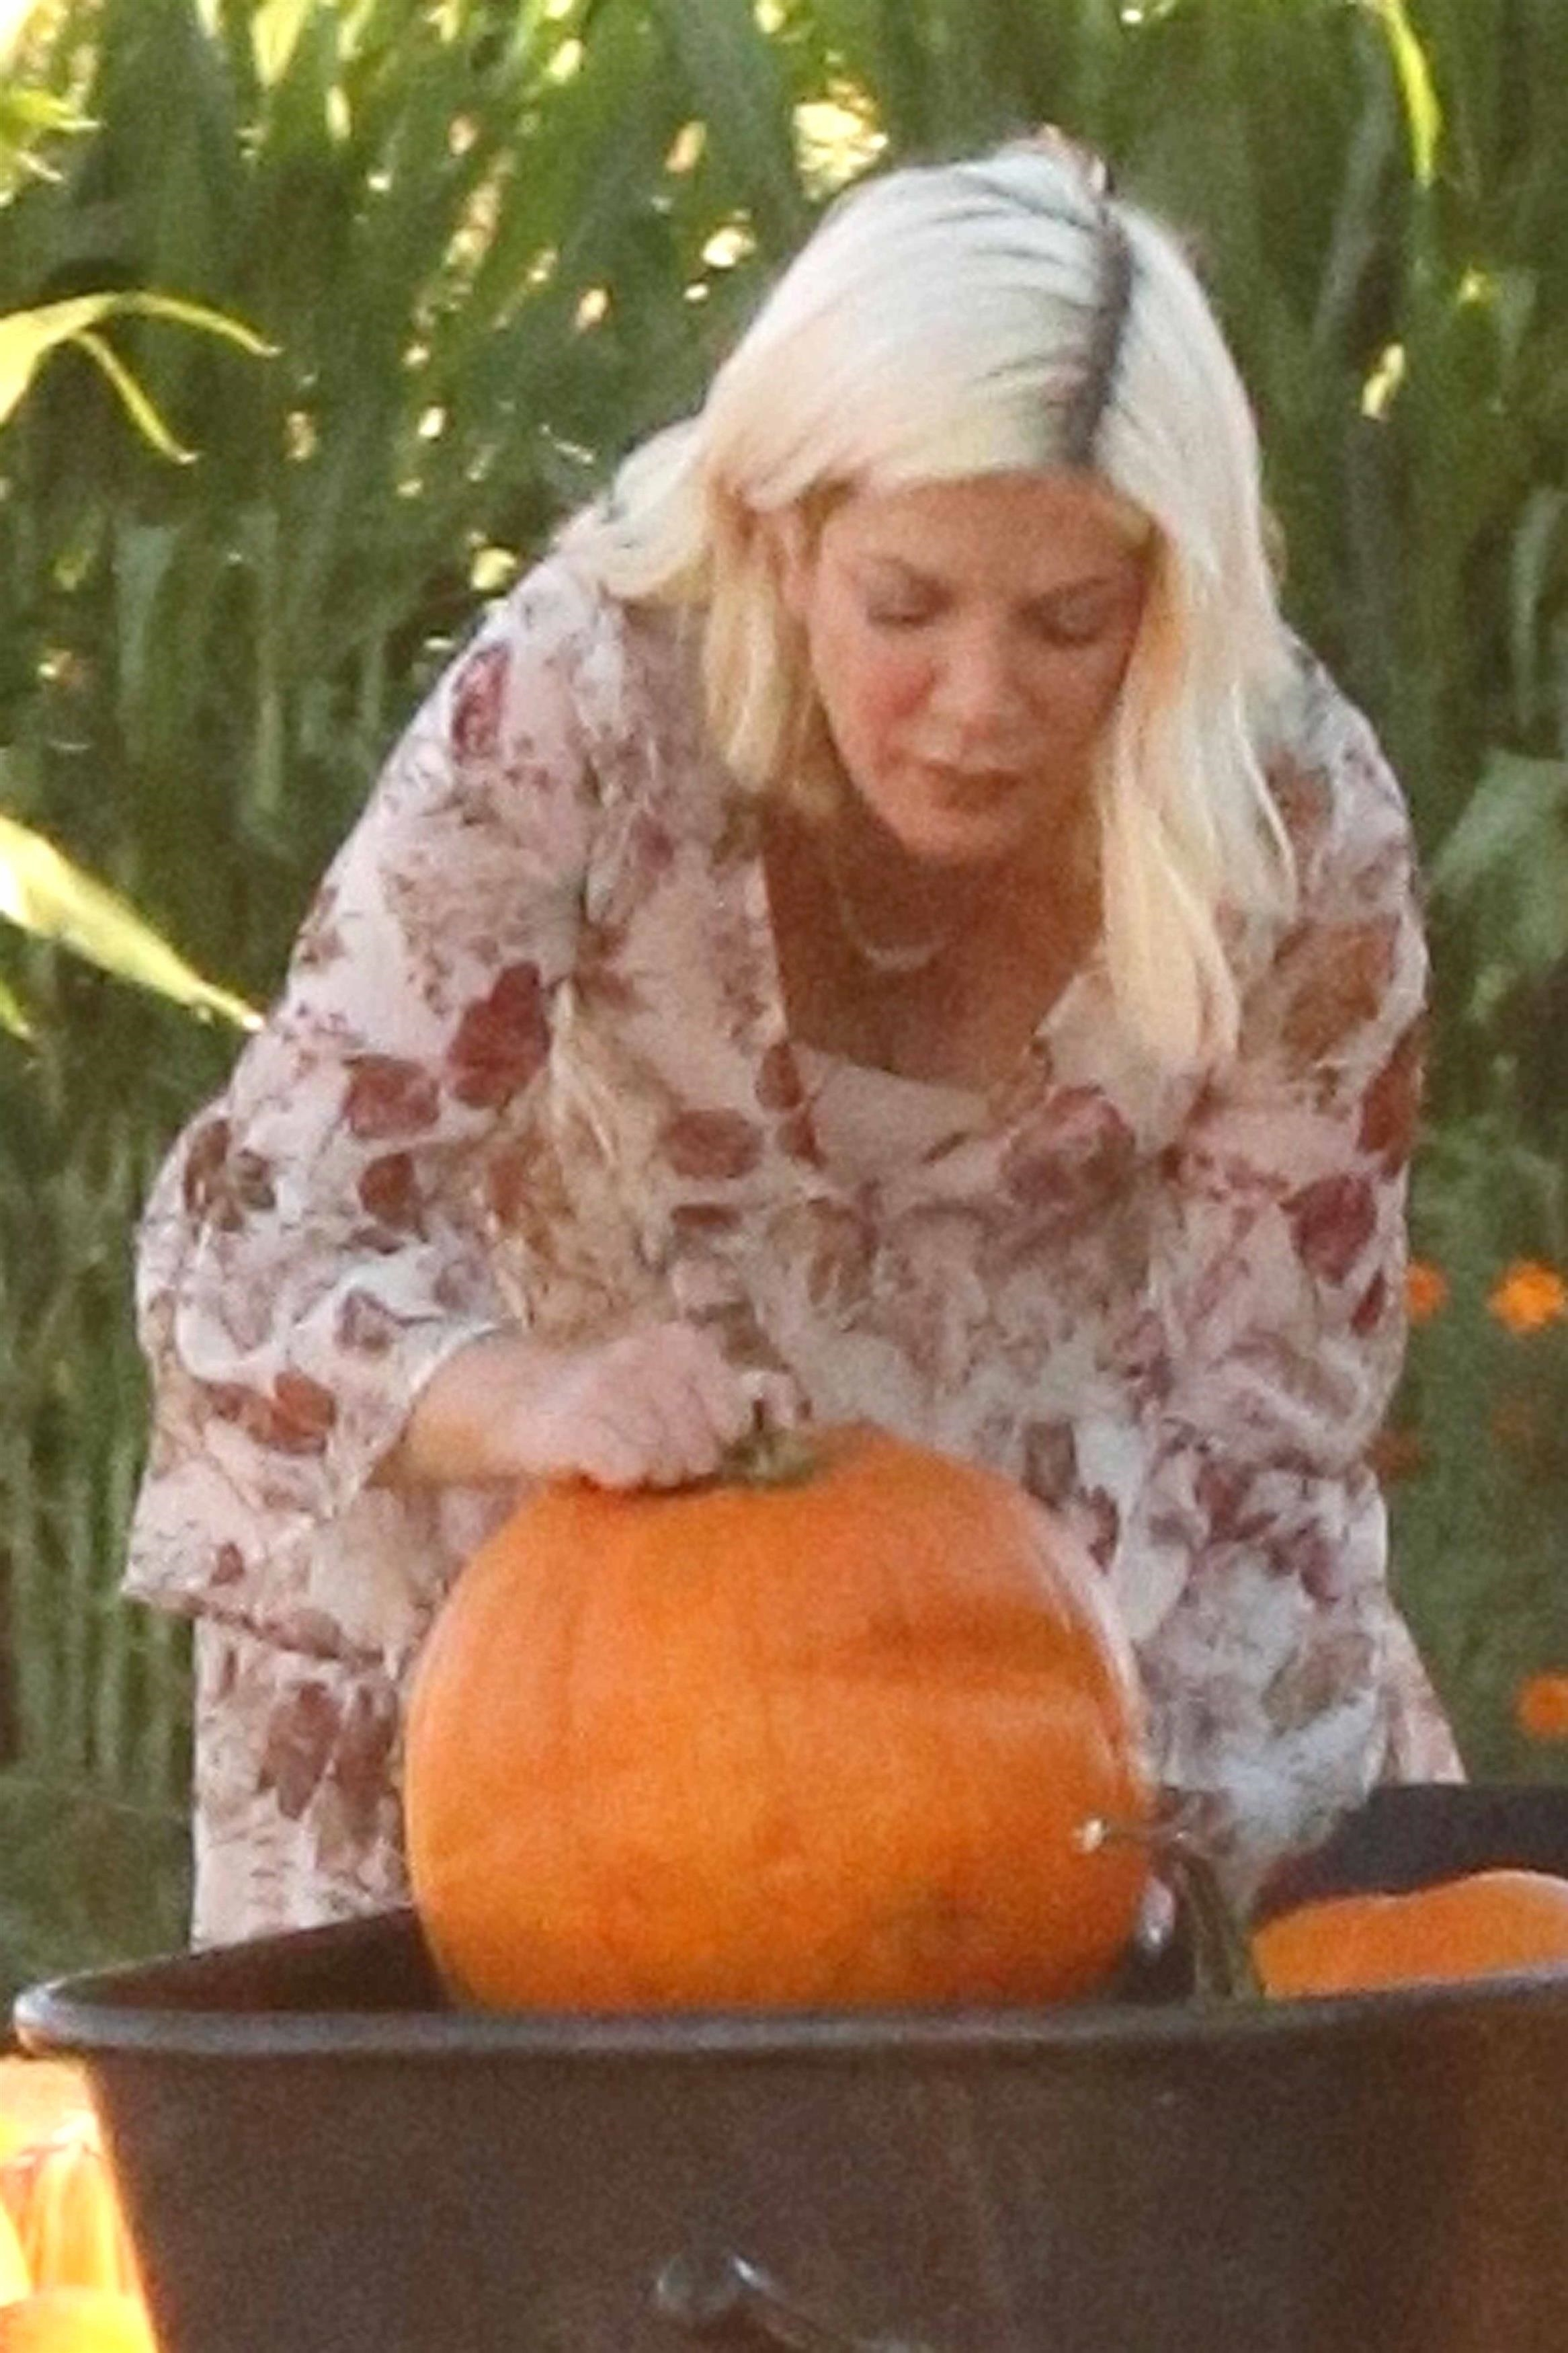 Tori Spelling takes her kids to a pumpkin patch in Los Angeles on Oct. 15, 2017.